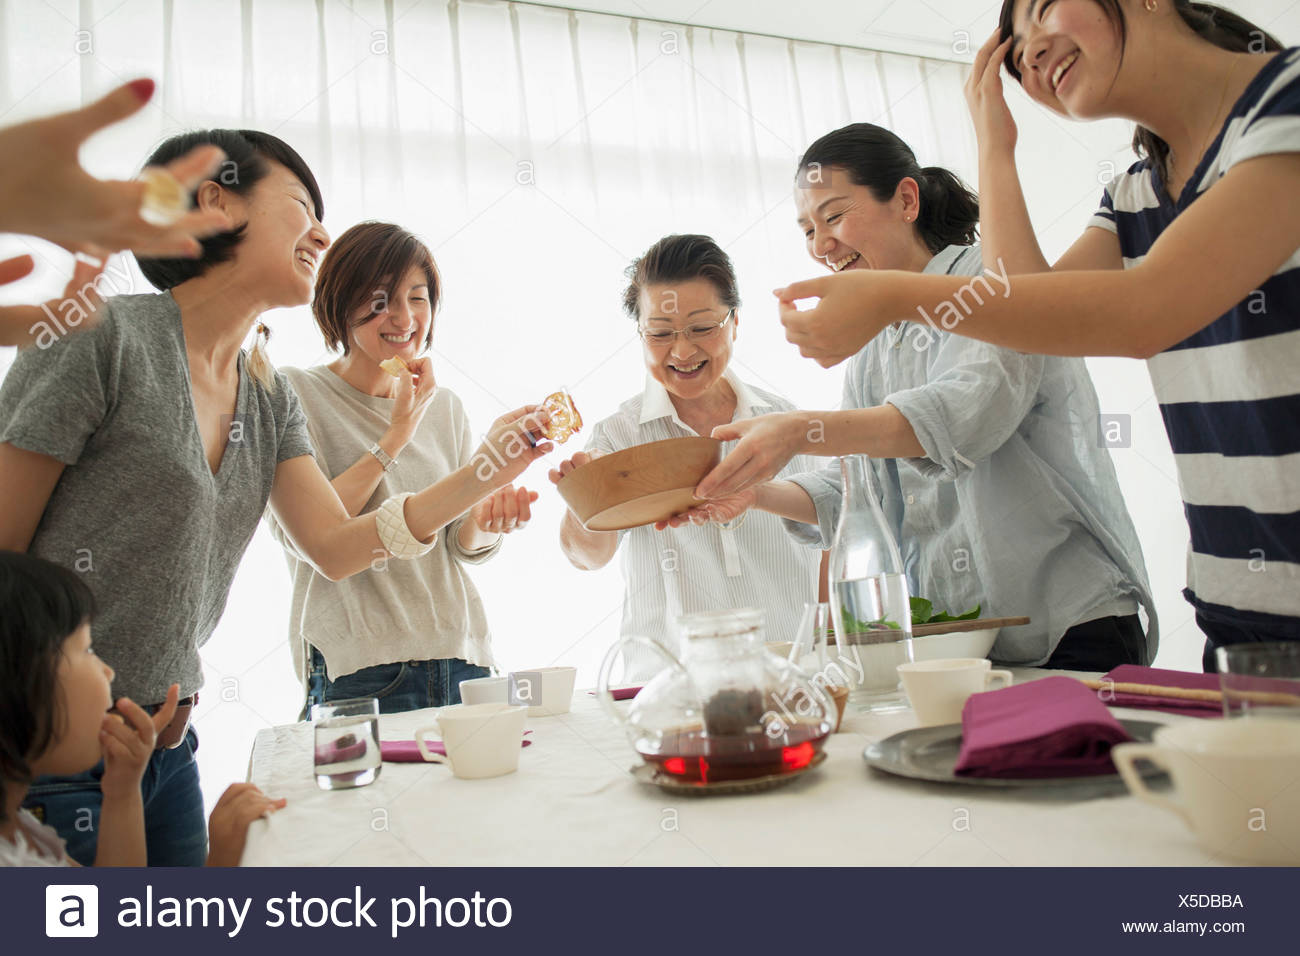 Three generation family laughing at mealtime - Stock Image